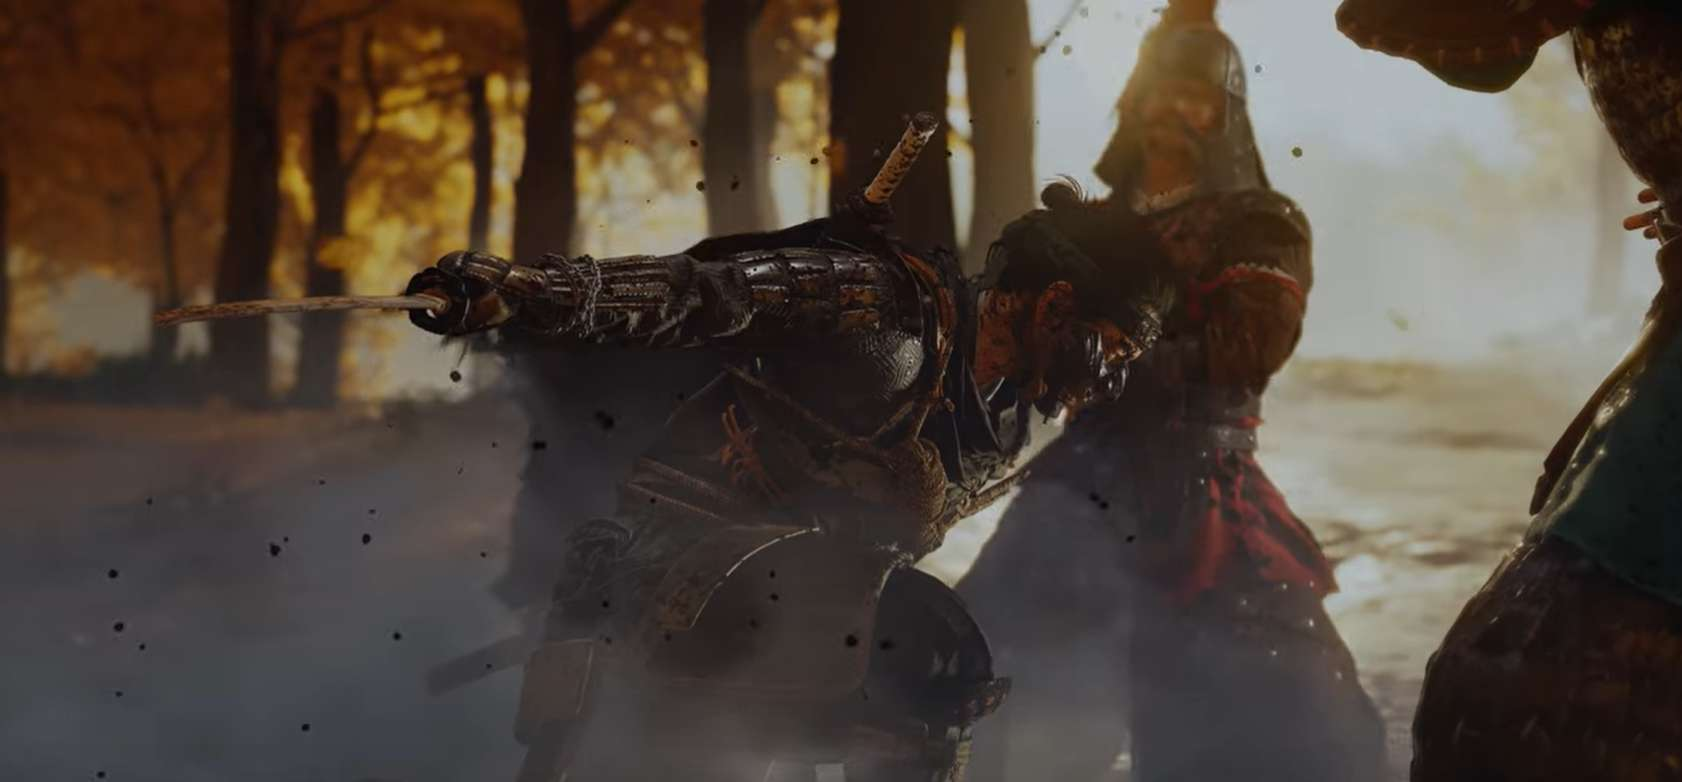 Full Ghost Of Tsushima Trailer Drops At The Game Awards – Confirms Summer 2020 Release Window